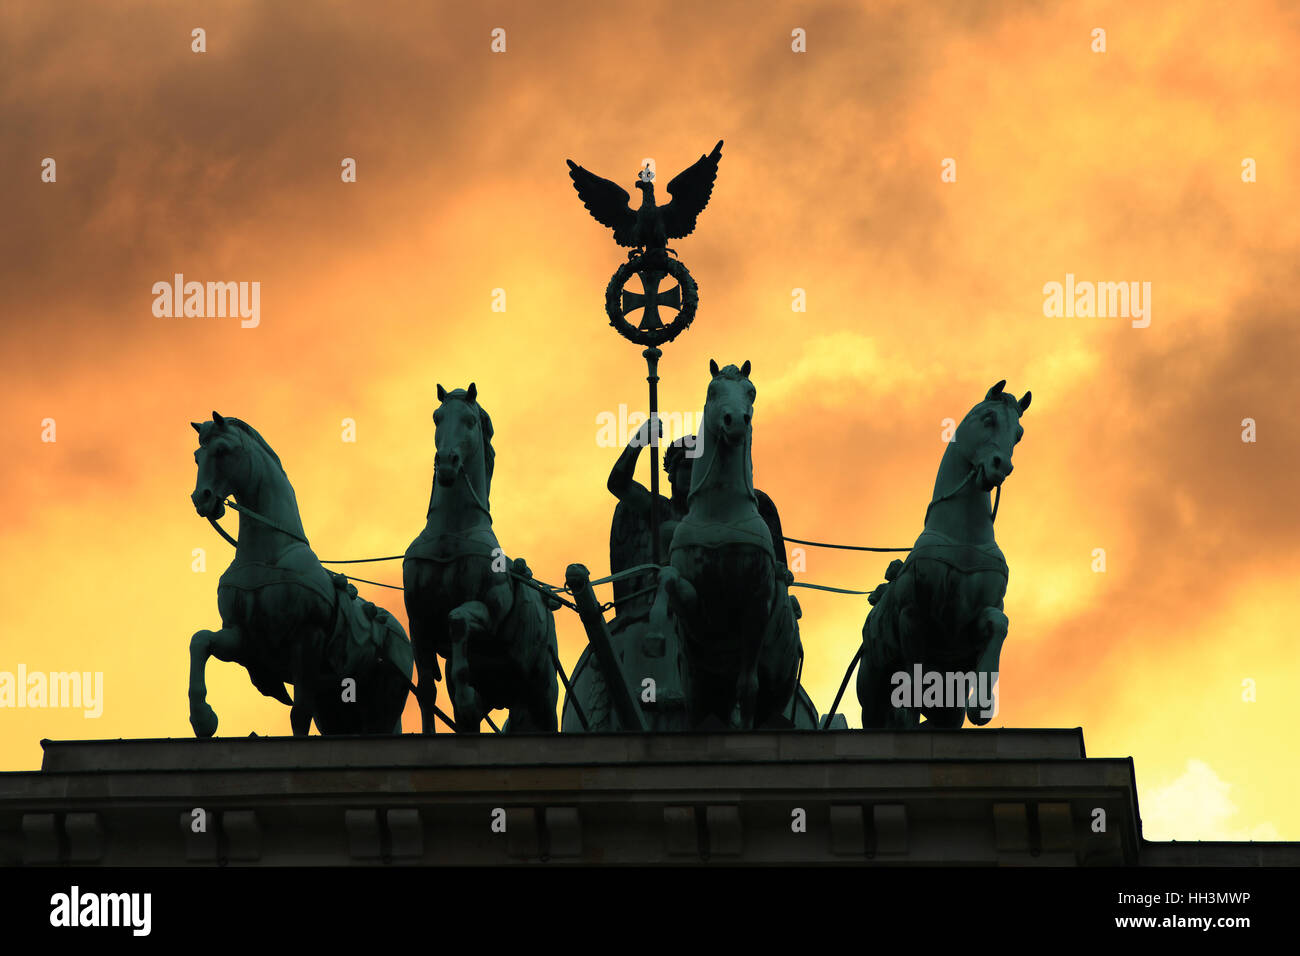 Brandenburger Tor Berlin Quadriga Stockbild